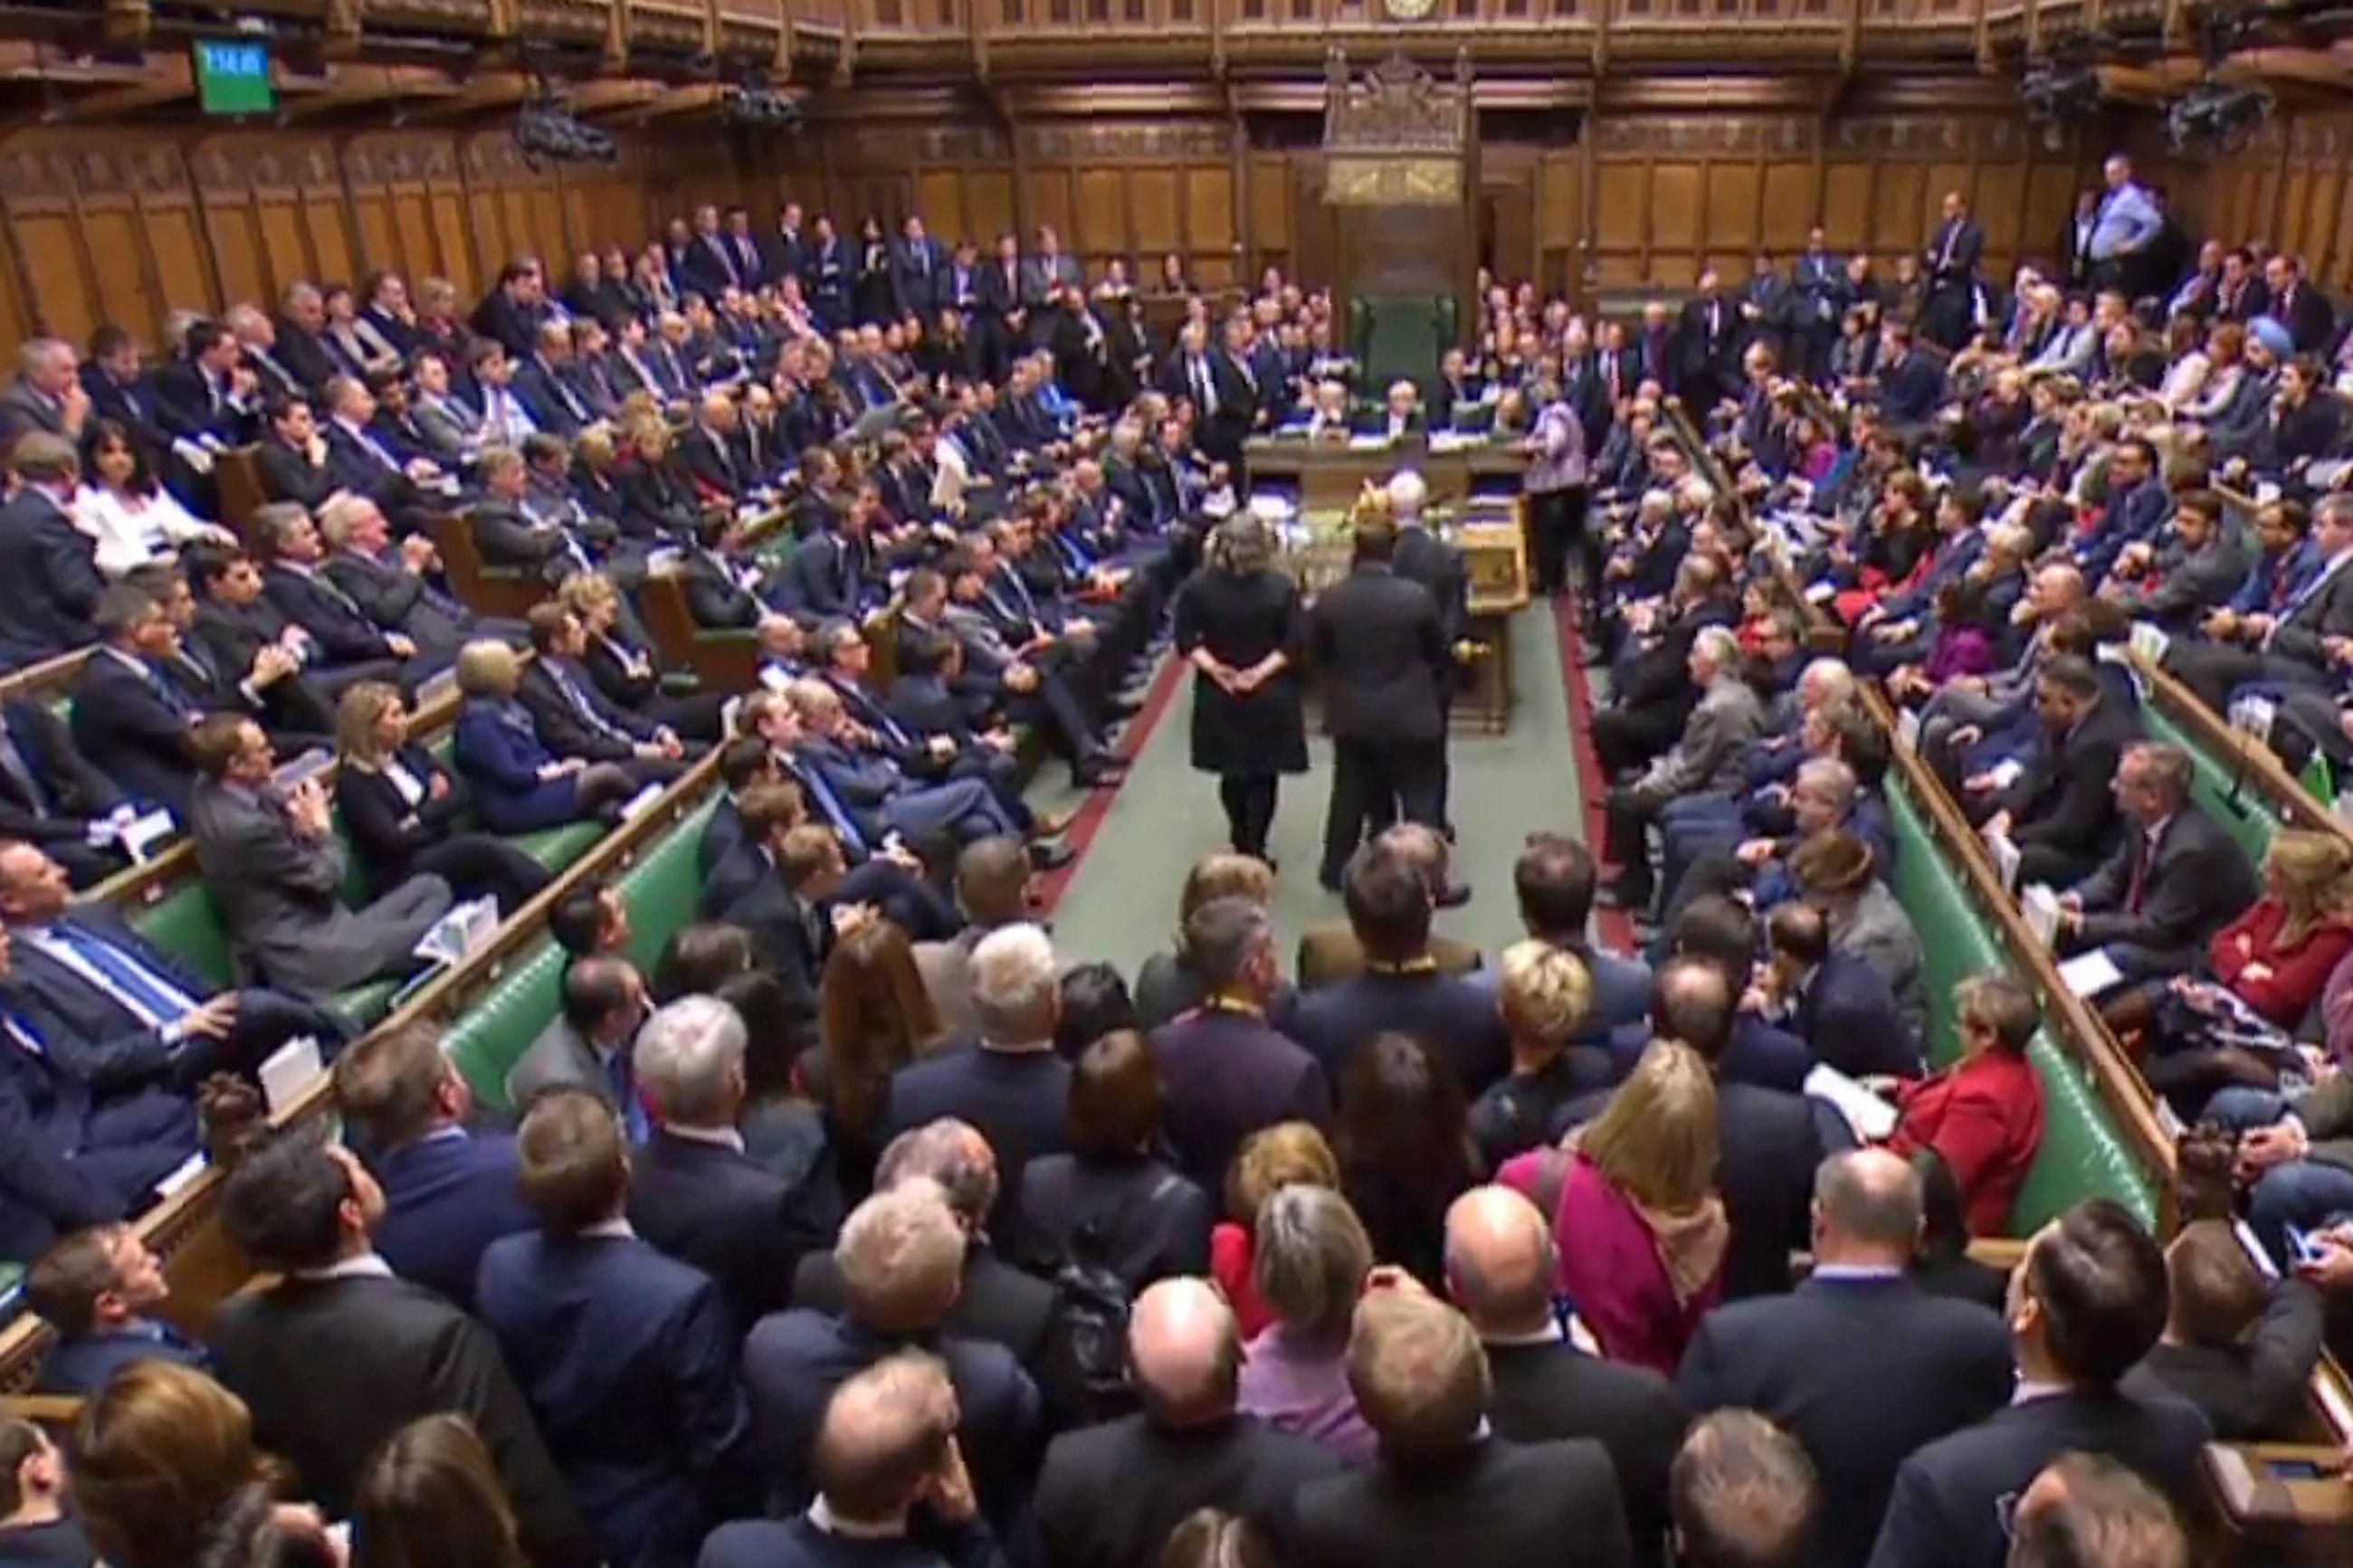 MPs accused of sexual harassment may only have to say sorry as campaigners blast draft report into tackling Westminster sleaze scandal